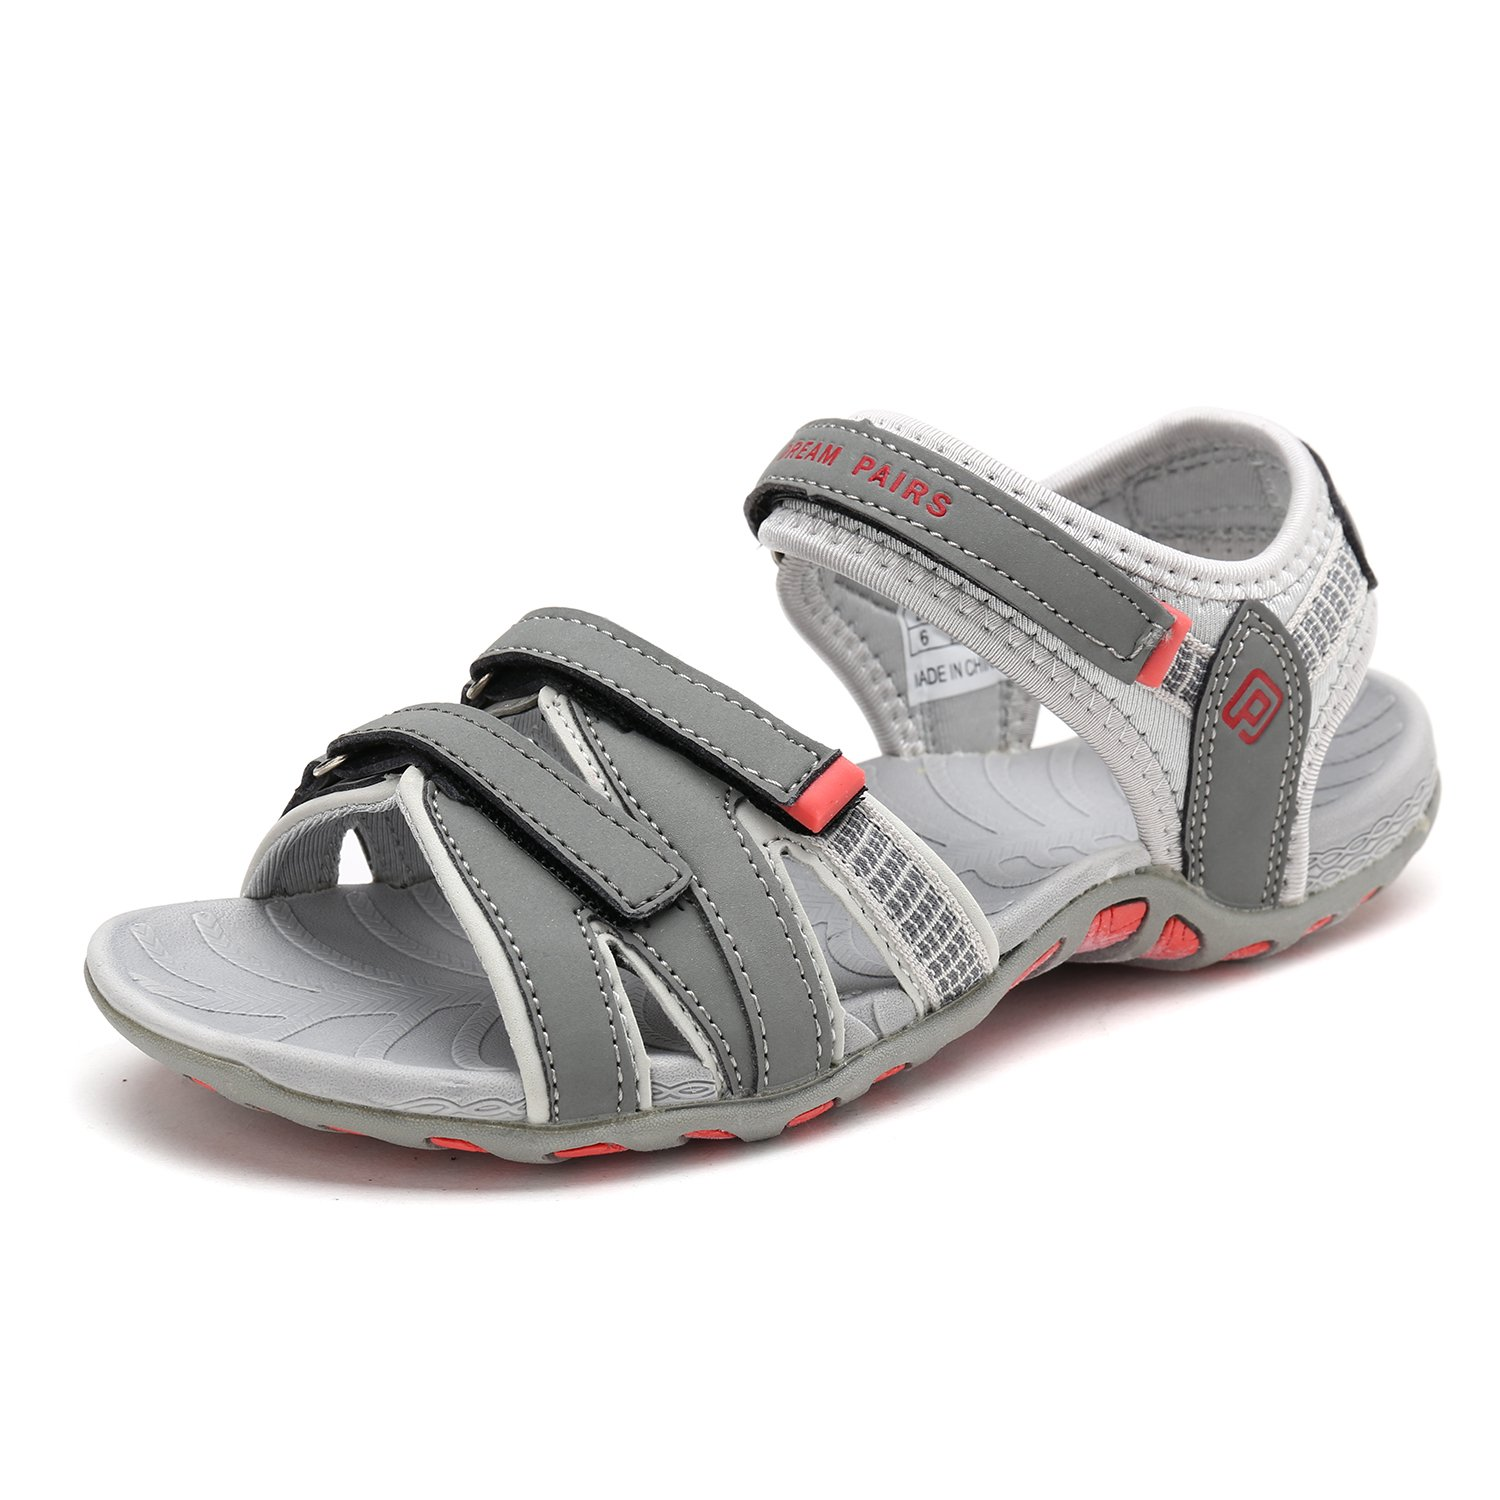 DREAM PAIRS Women's 160912-W Adventurous Summer Outdoor Sandals B07897Z6PC 6 B(M) US|Grey/Lt.grey/Coral